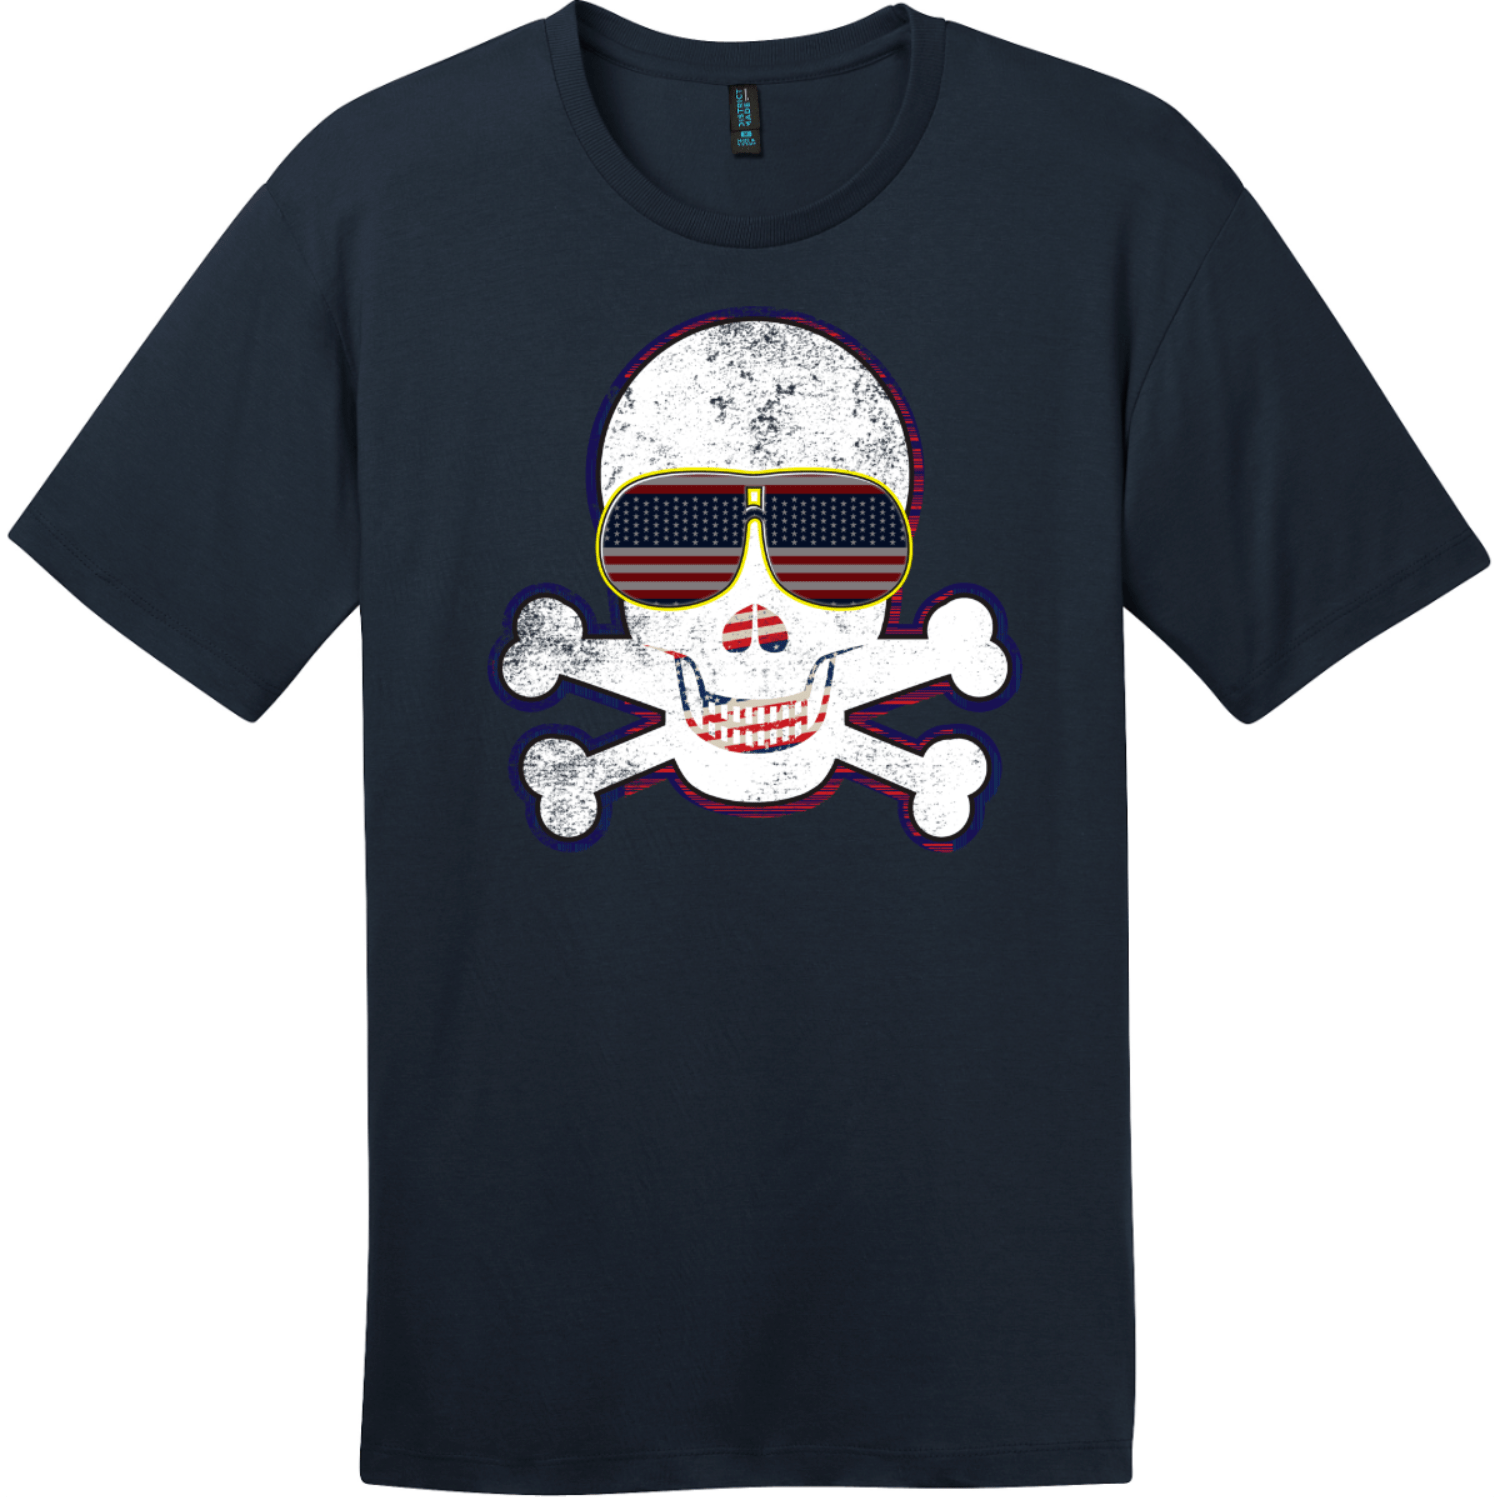 American Flag Sunglasses Retro Skull T-Shirt New Navy District Perfect Weight Tee DT104